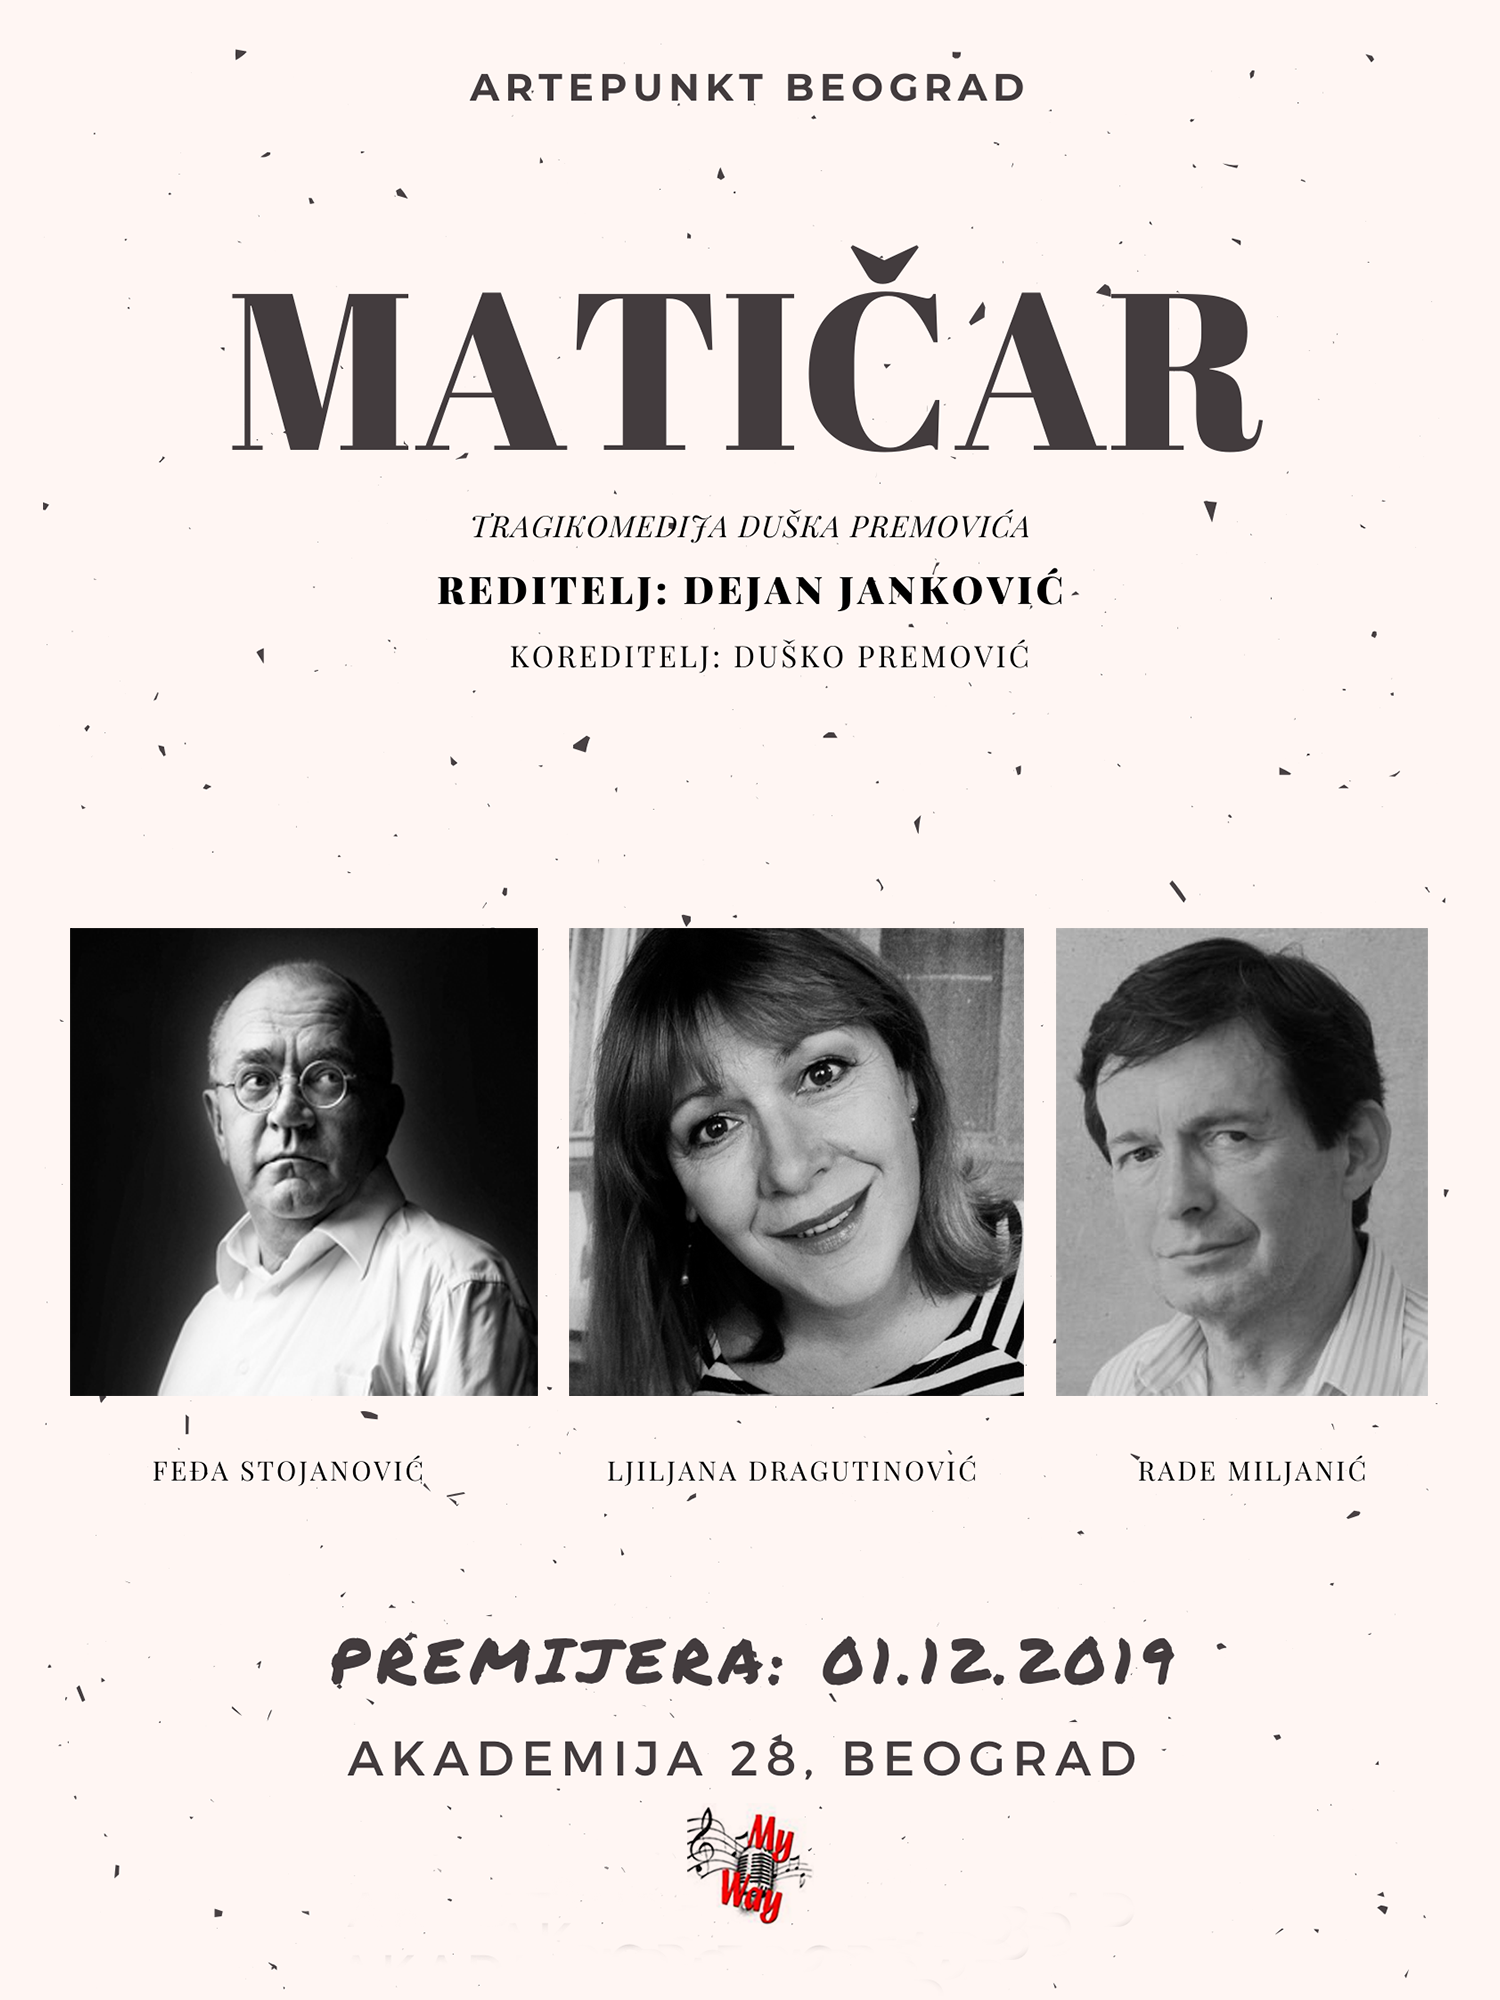 Maticar_1500x2000